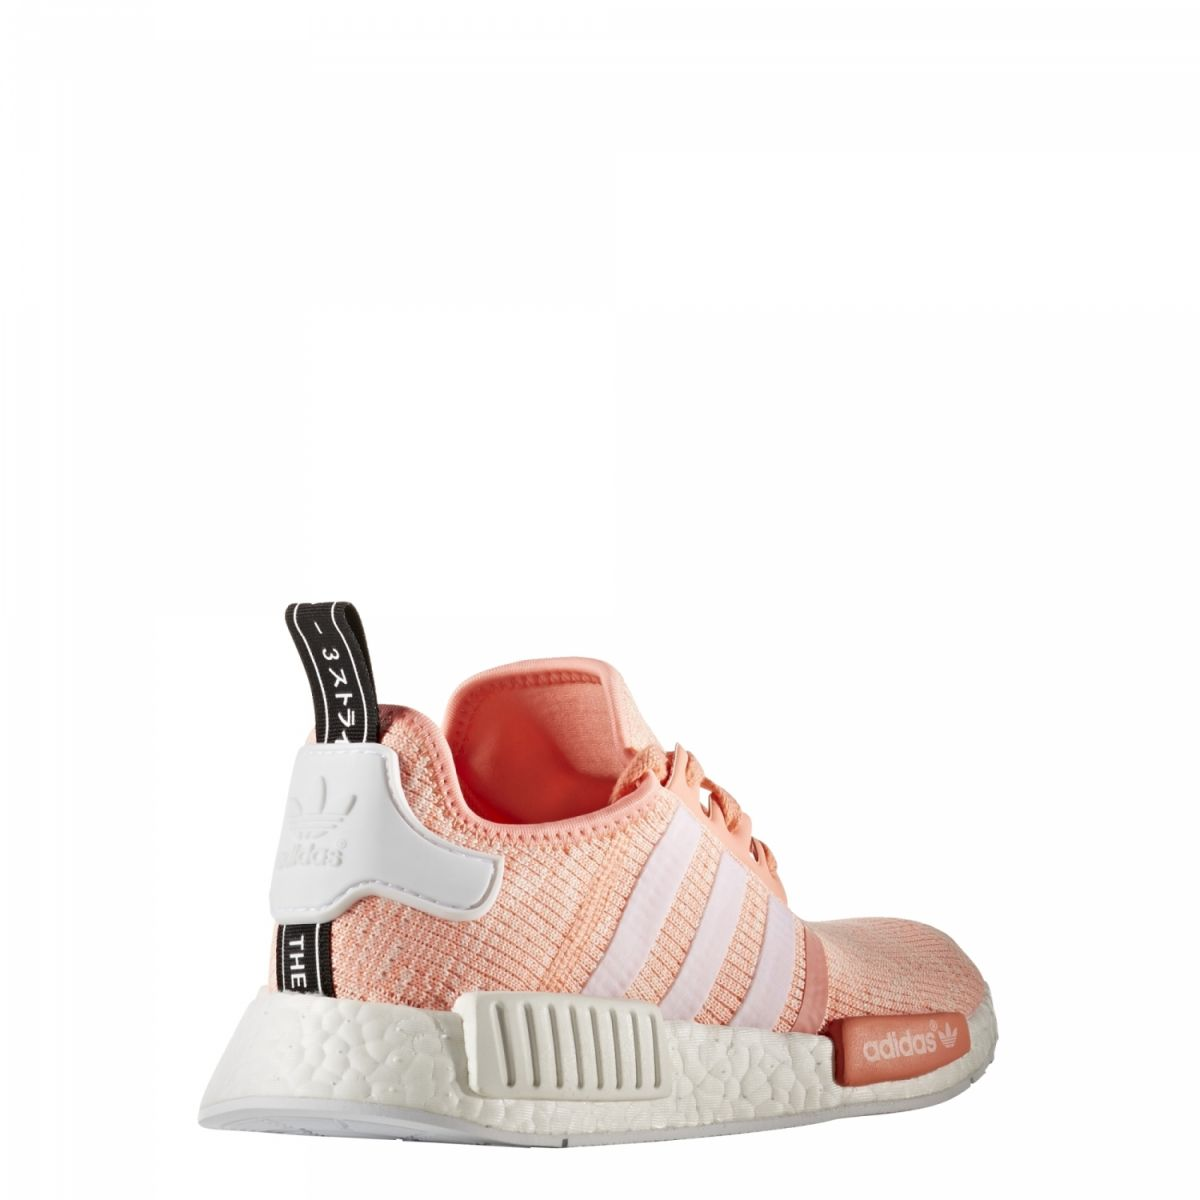 adidas originals nmd r1 sneaker damen schuhe coral. Black Bedroom Furniture Sets. Home Design Ideas